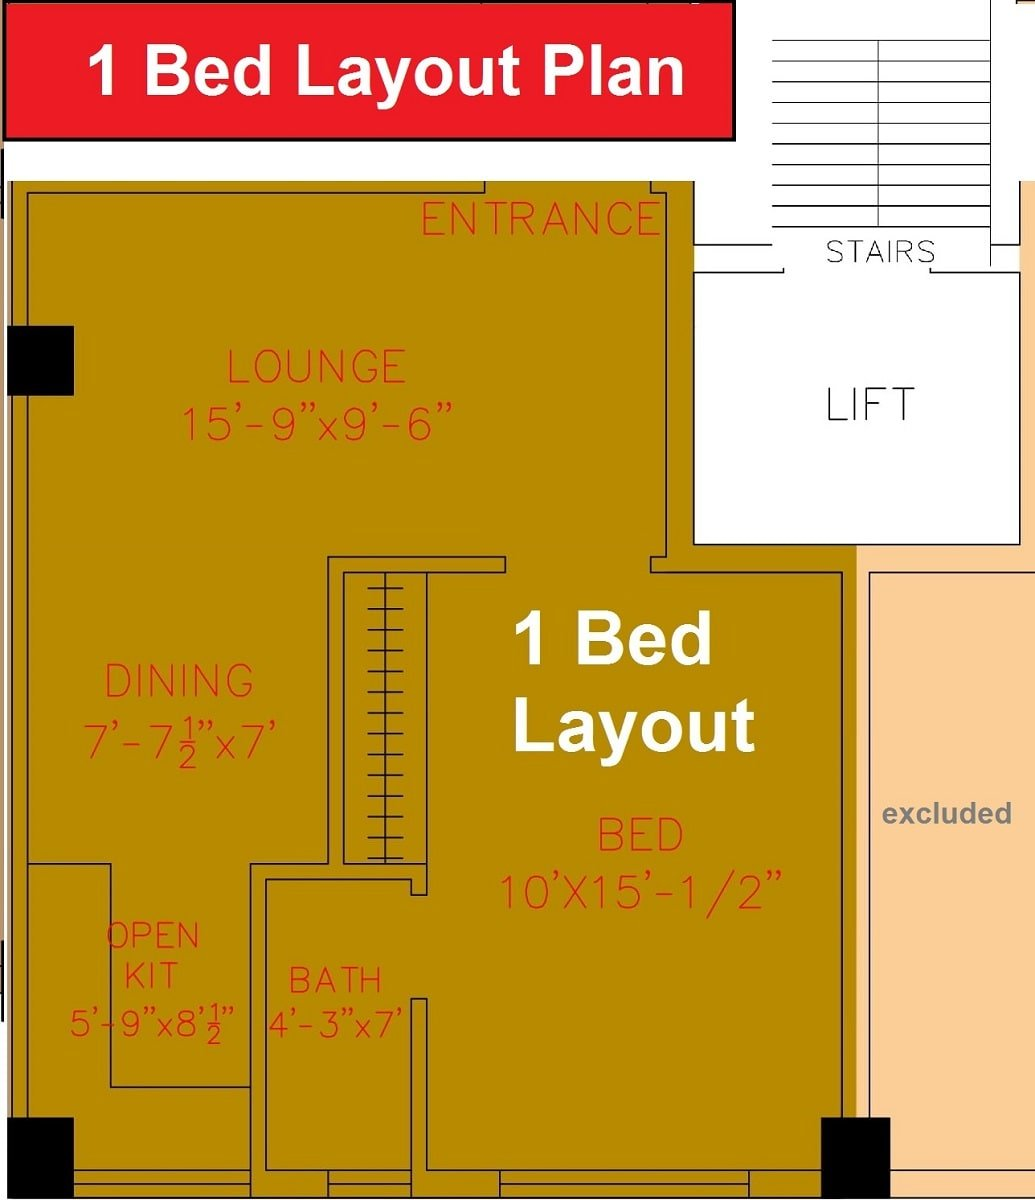 1 bed layout plan apartment Shanghai Heights-min